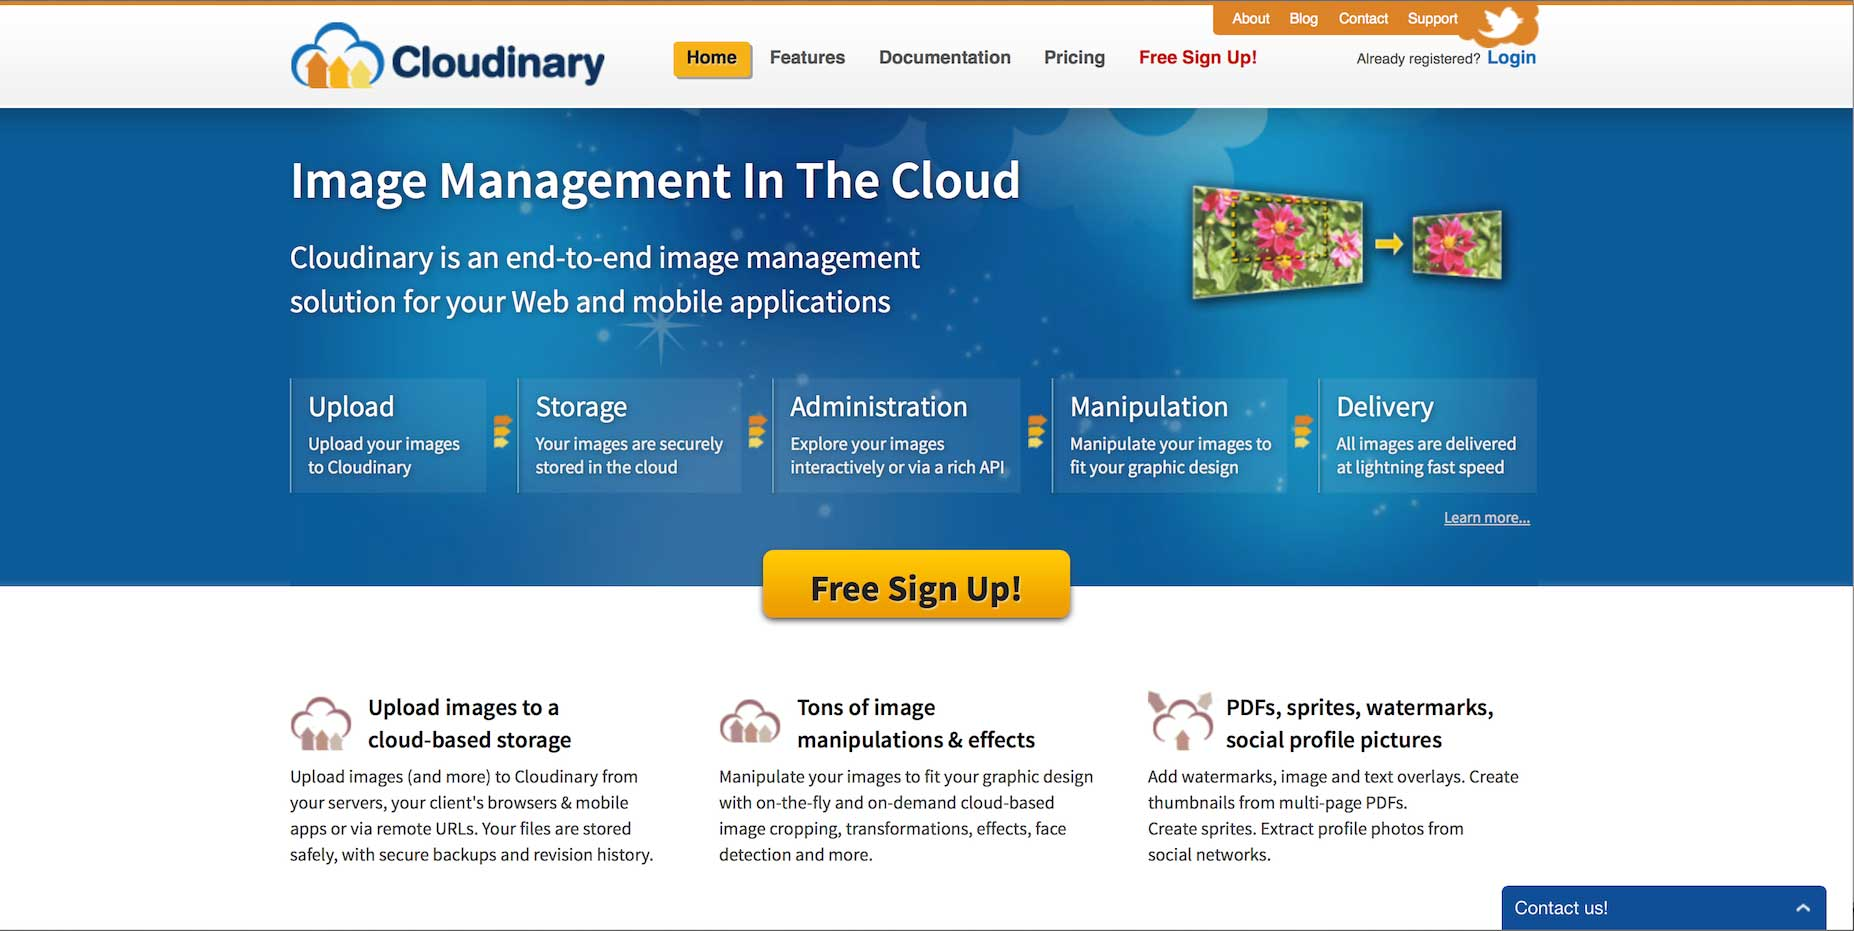 Cloudinary.com